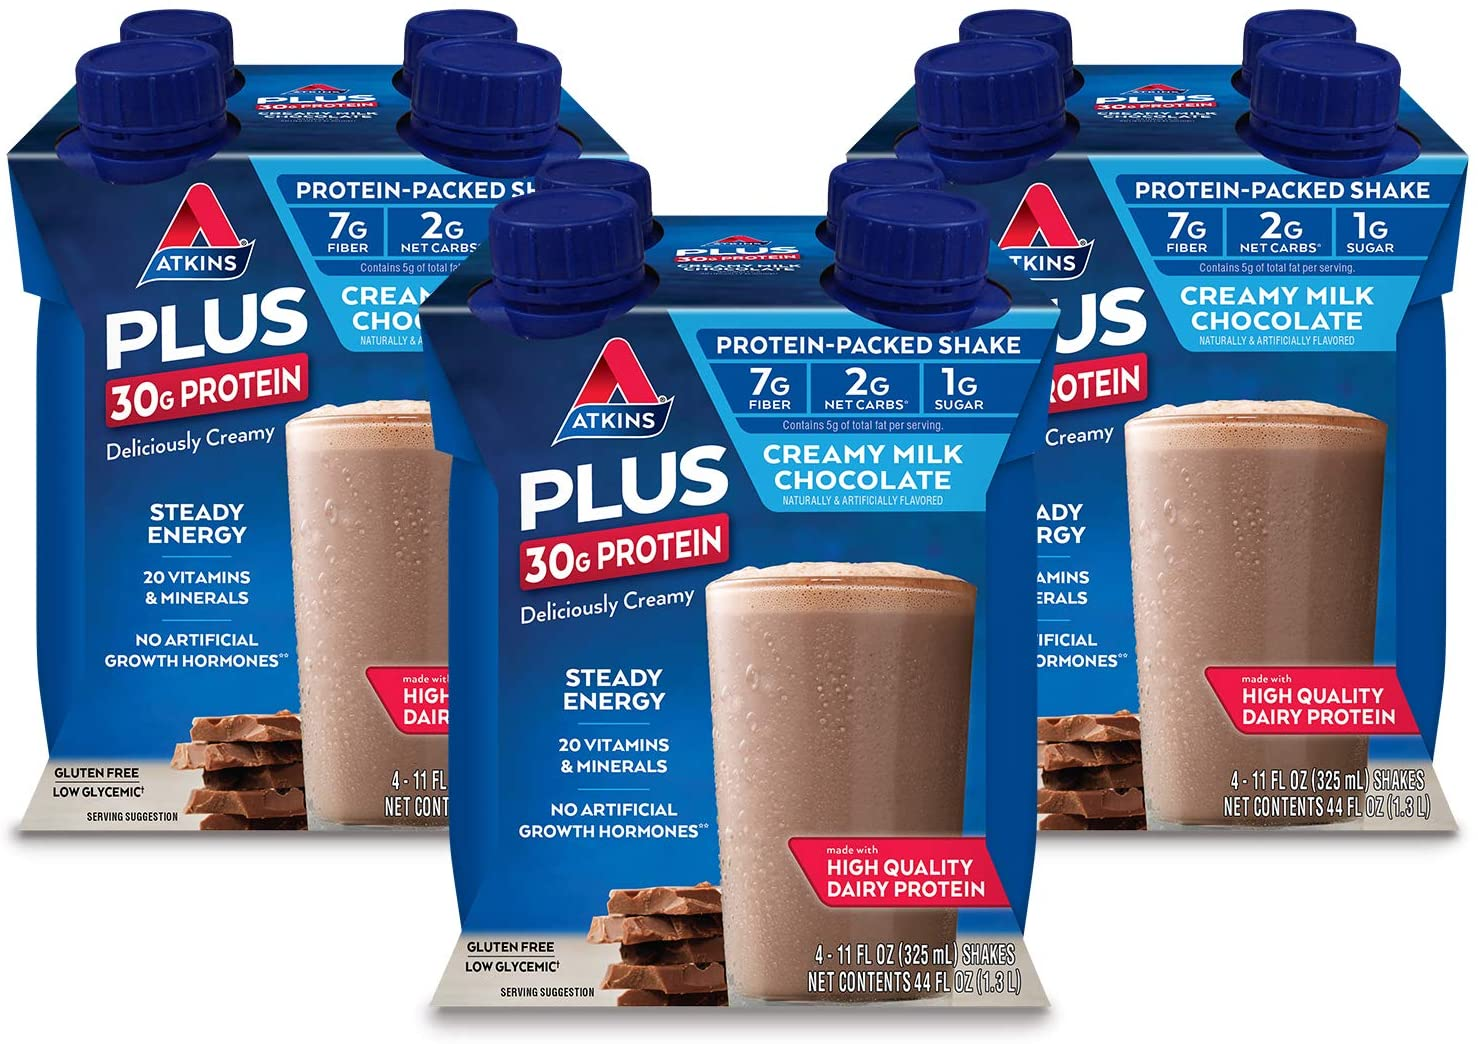 Atkins Protein Shake Review